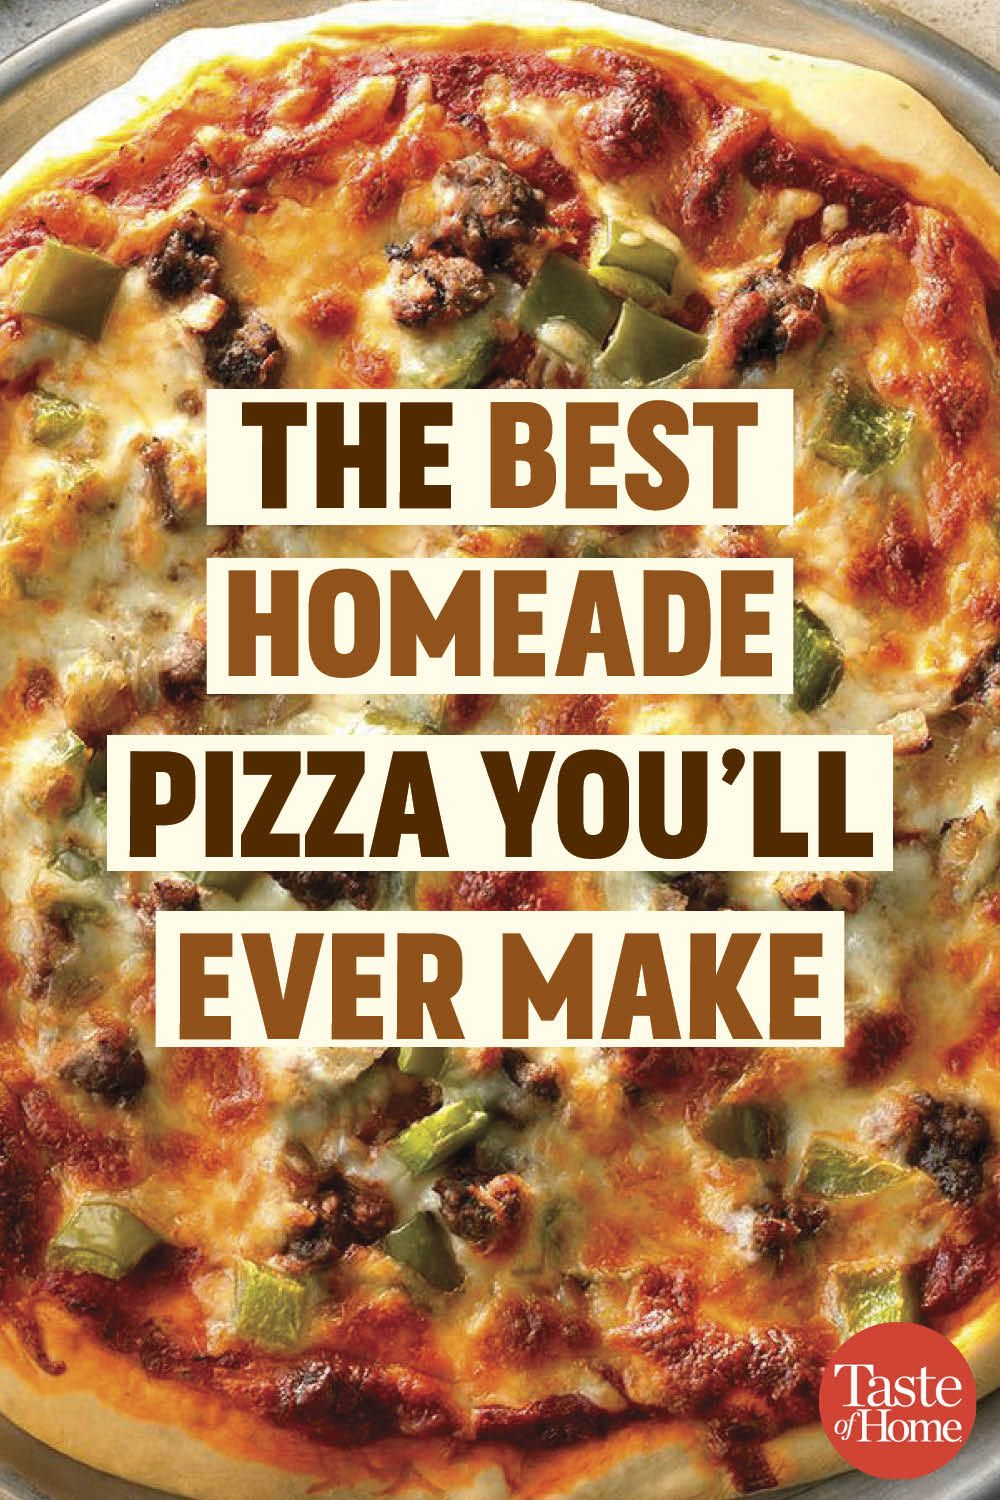 Homemade Pizza Recipe Pizza Recipes Homemade Best Homemade Pizza Homemade Pizza